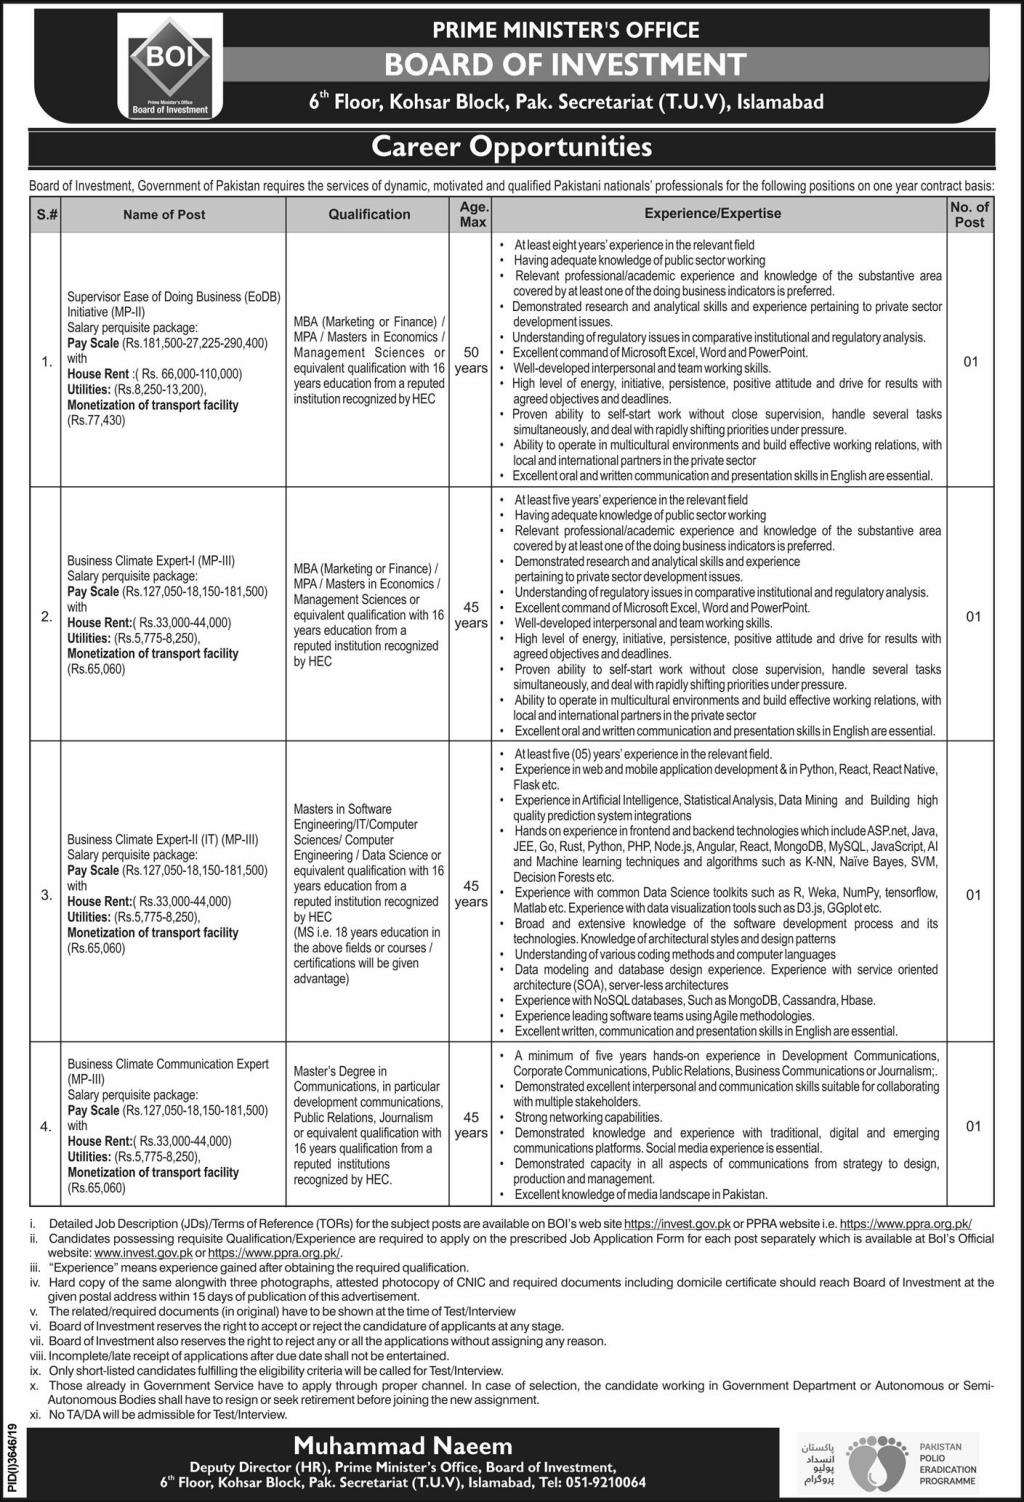 Board of Investment Jobs 2020 Prime Minister Office Islamabad